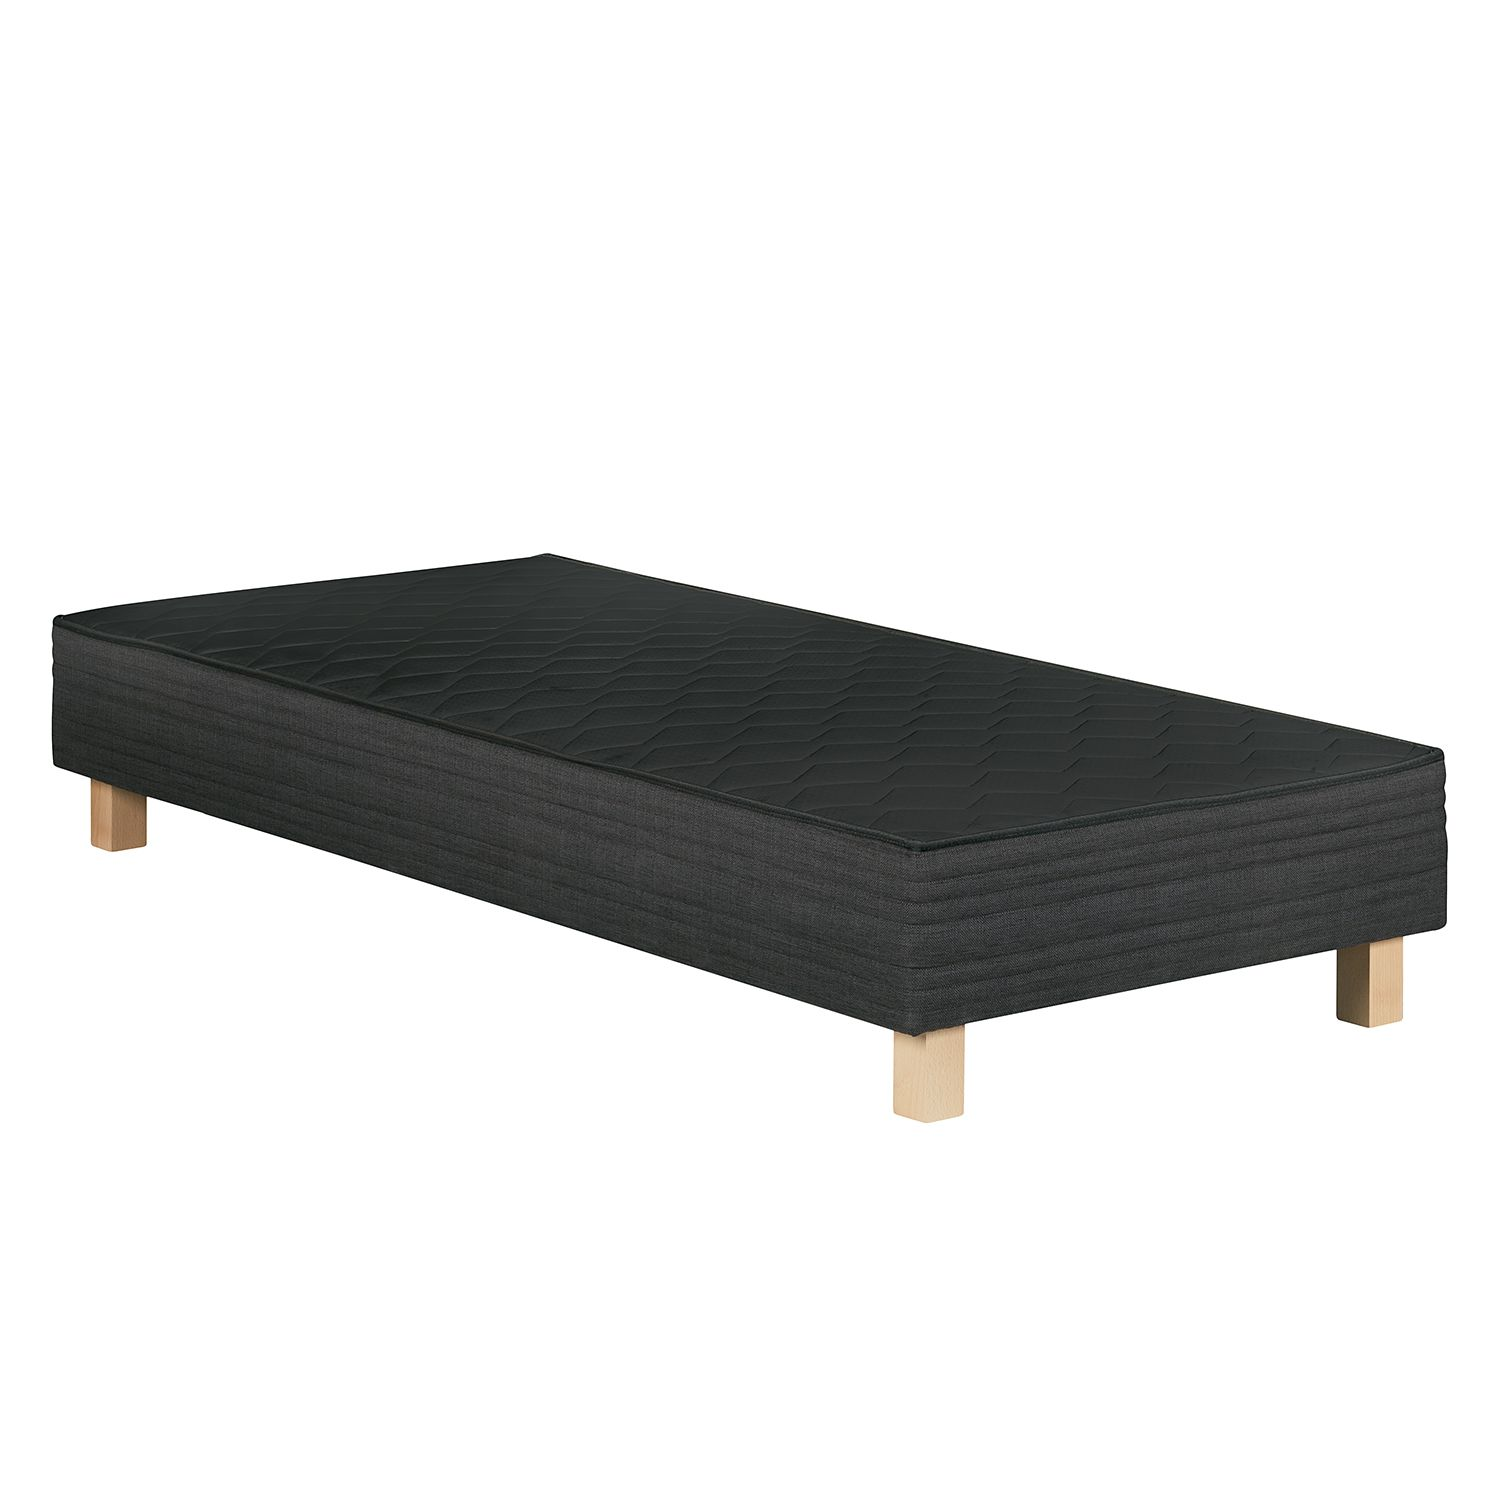 hoofdeinde boxspring kopen online internetwinkel. Black Bedroom Furniture Sets. Home Design Ideas